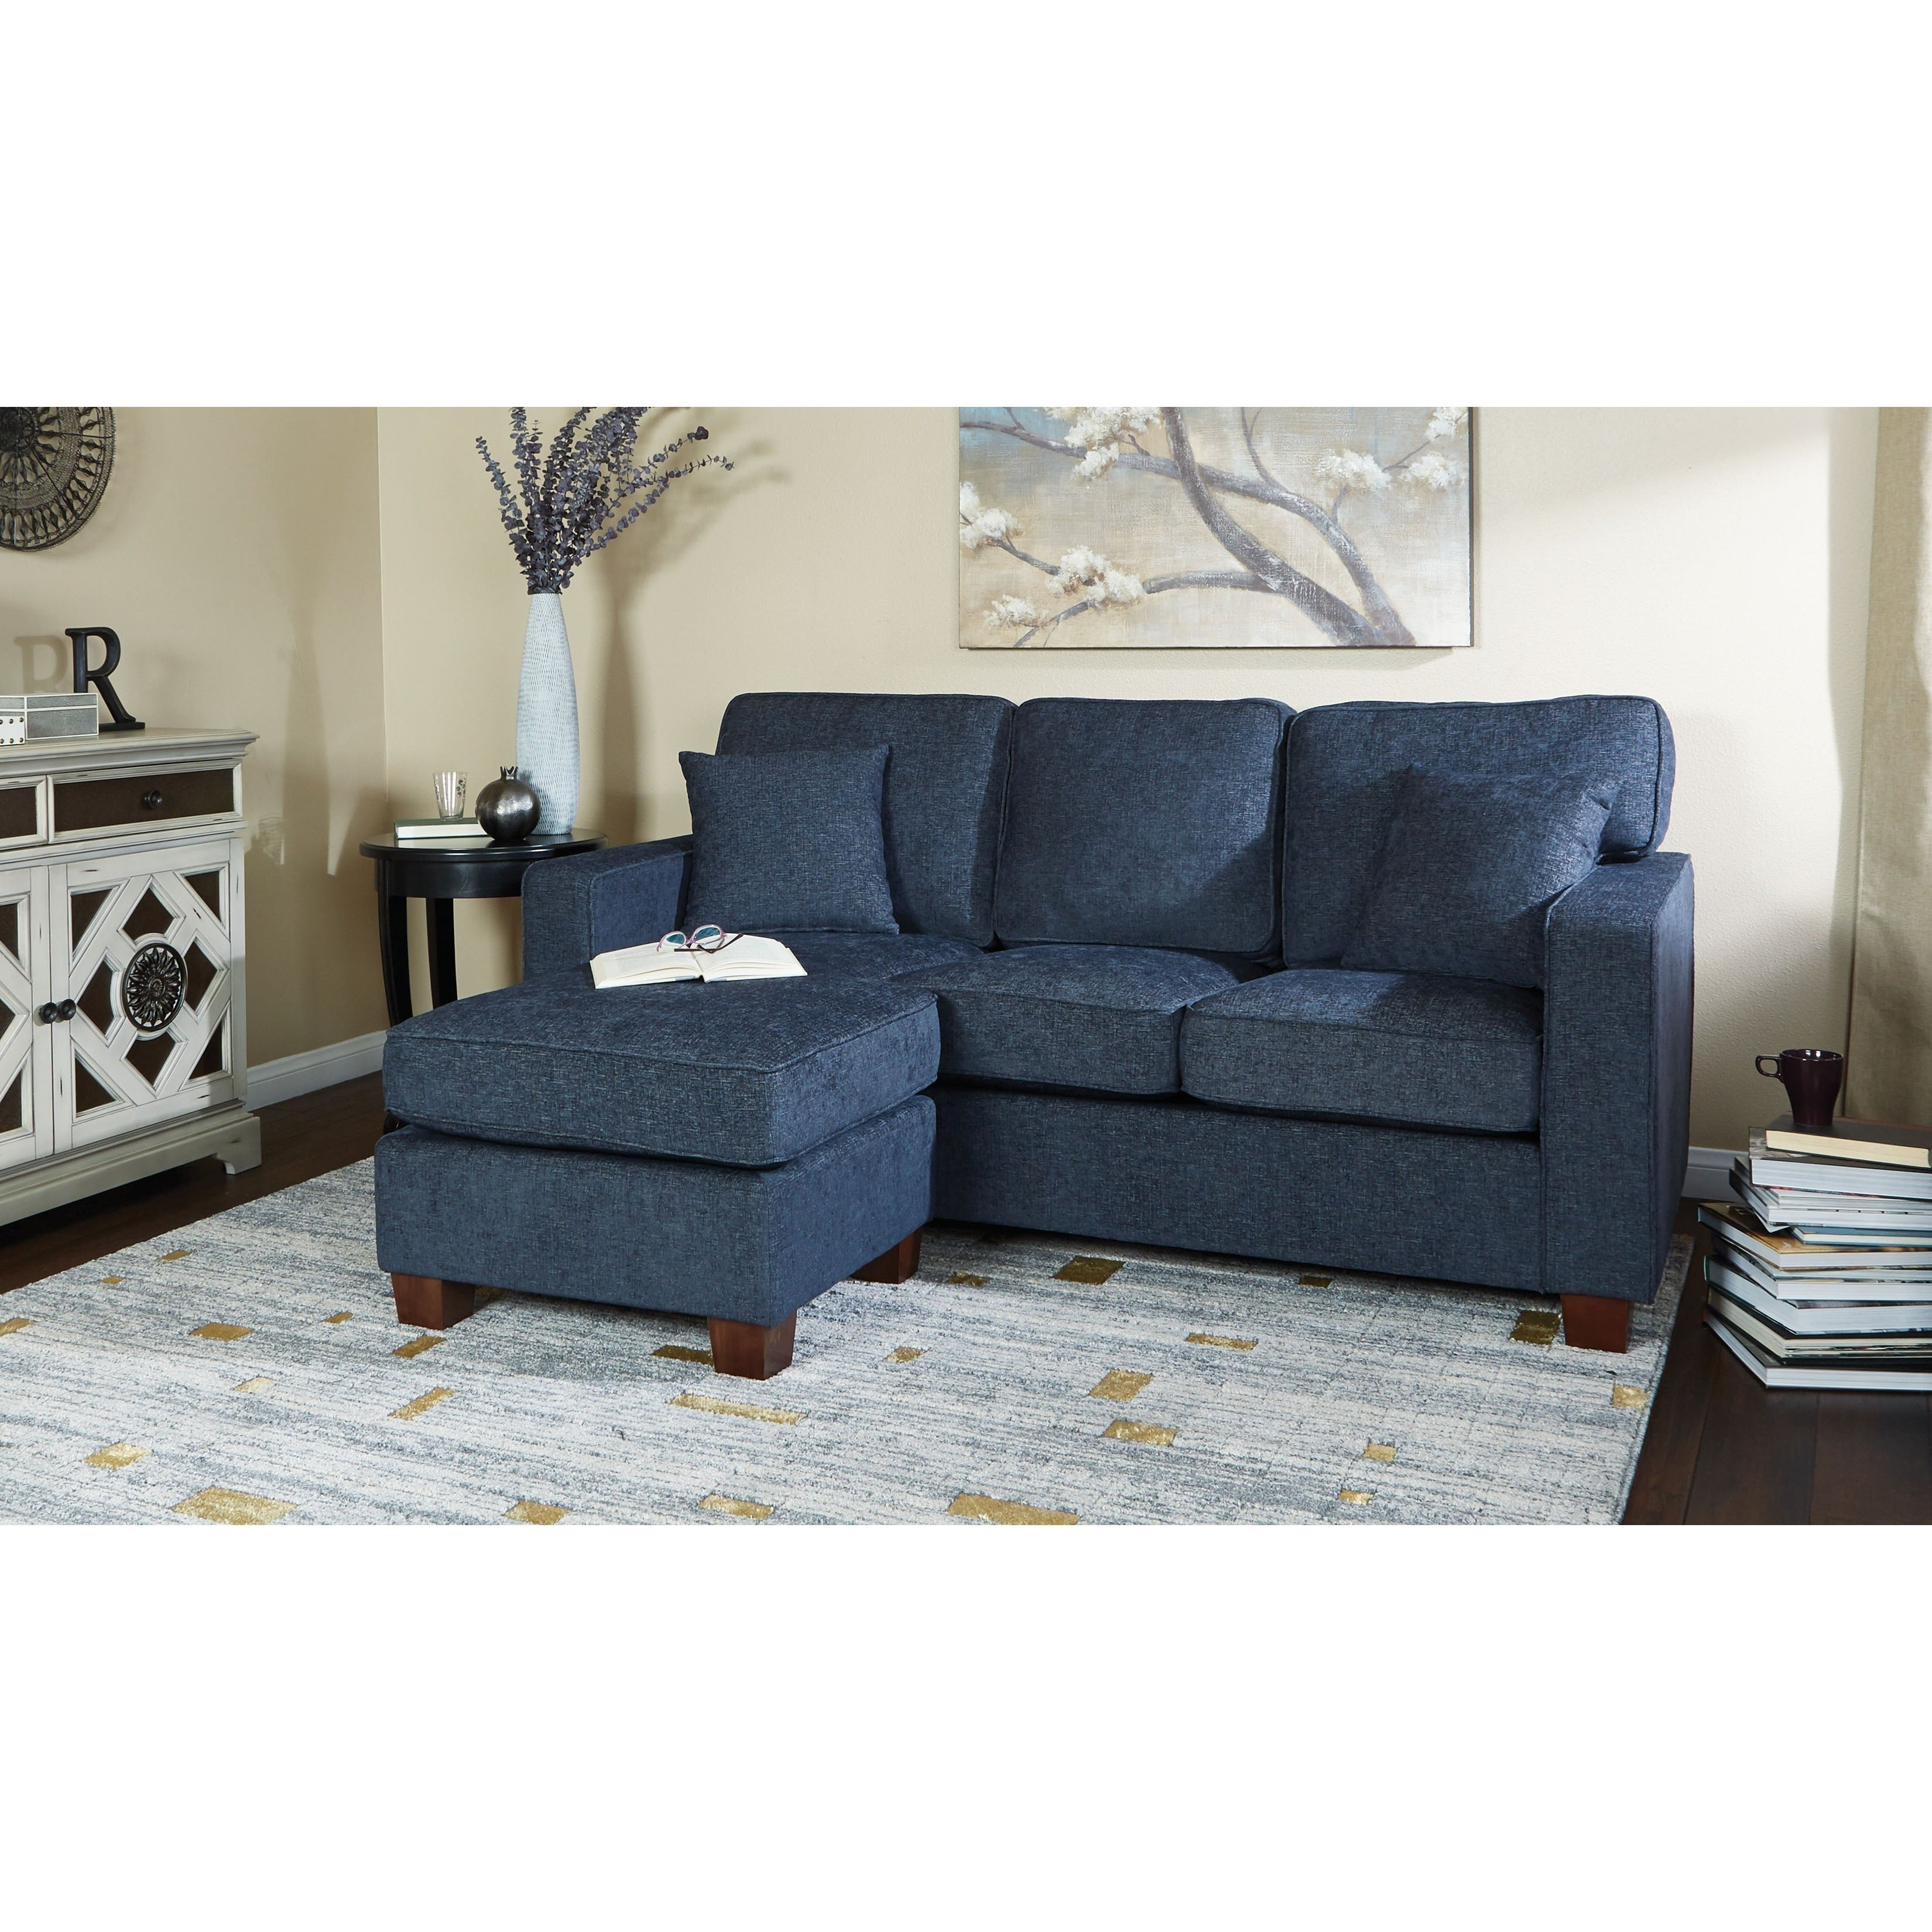 sofa slipcover furniture chaise for sofas sectional forctional slipcovers with full inspirational unique design size of